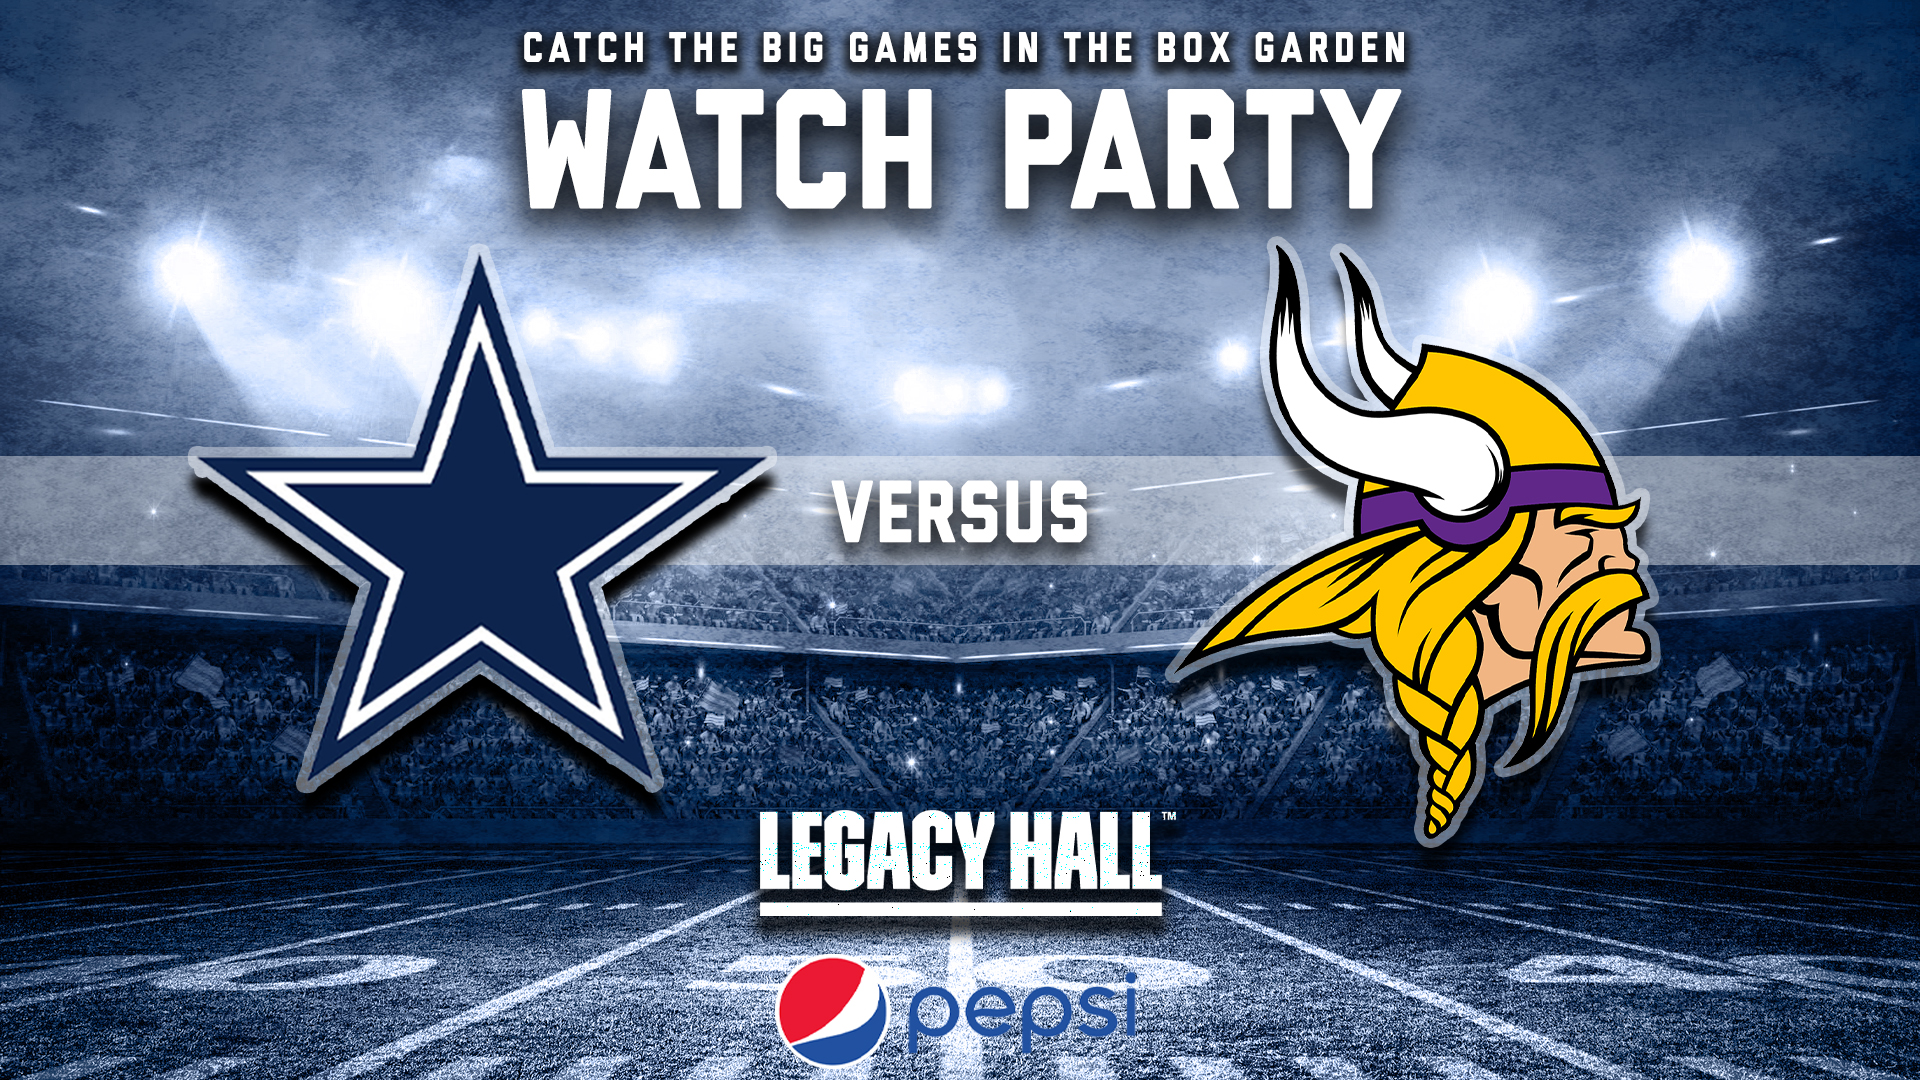 Promo image of Cowboys vs. Vikings Watch Party